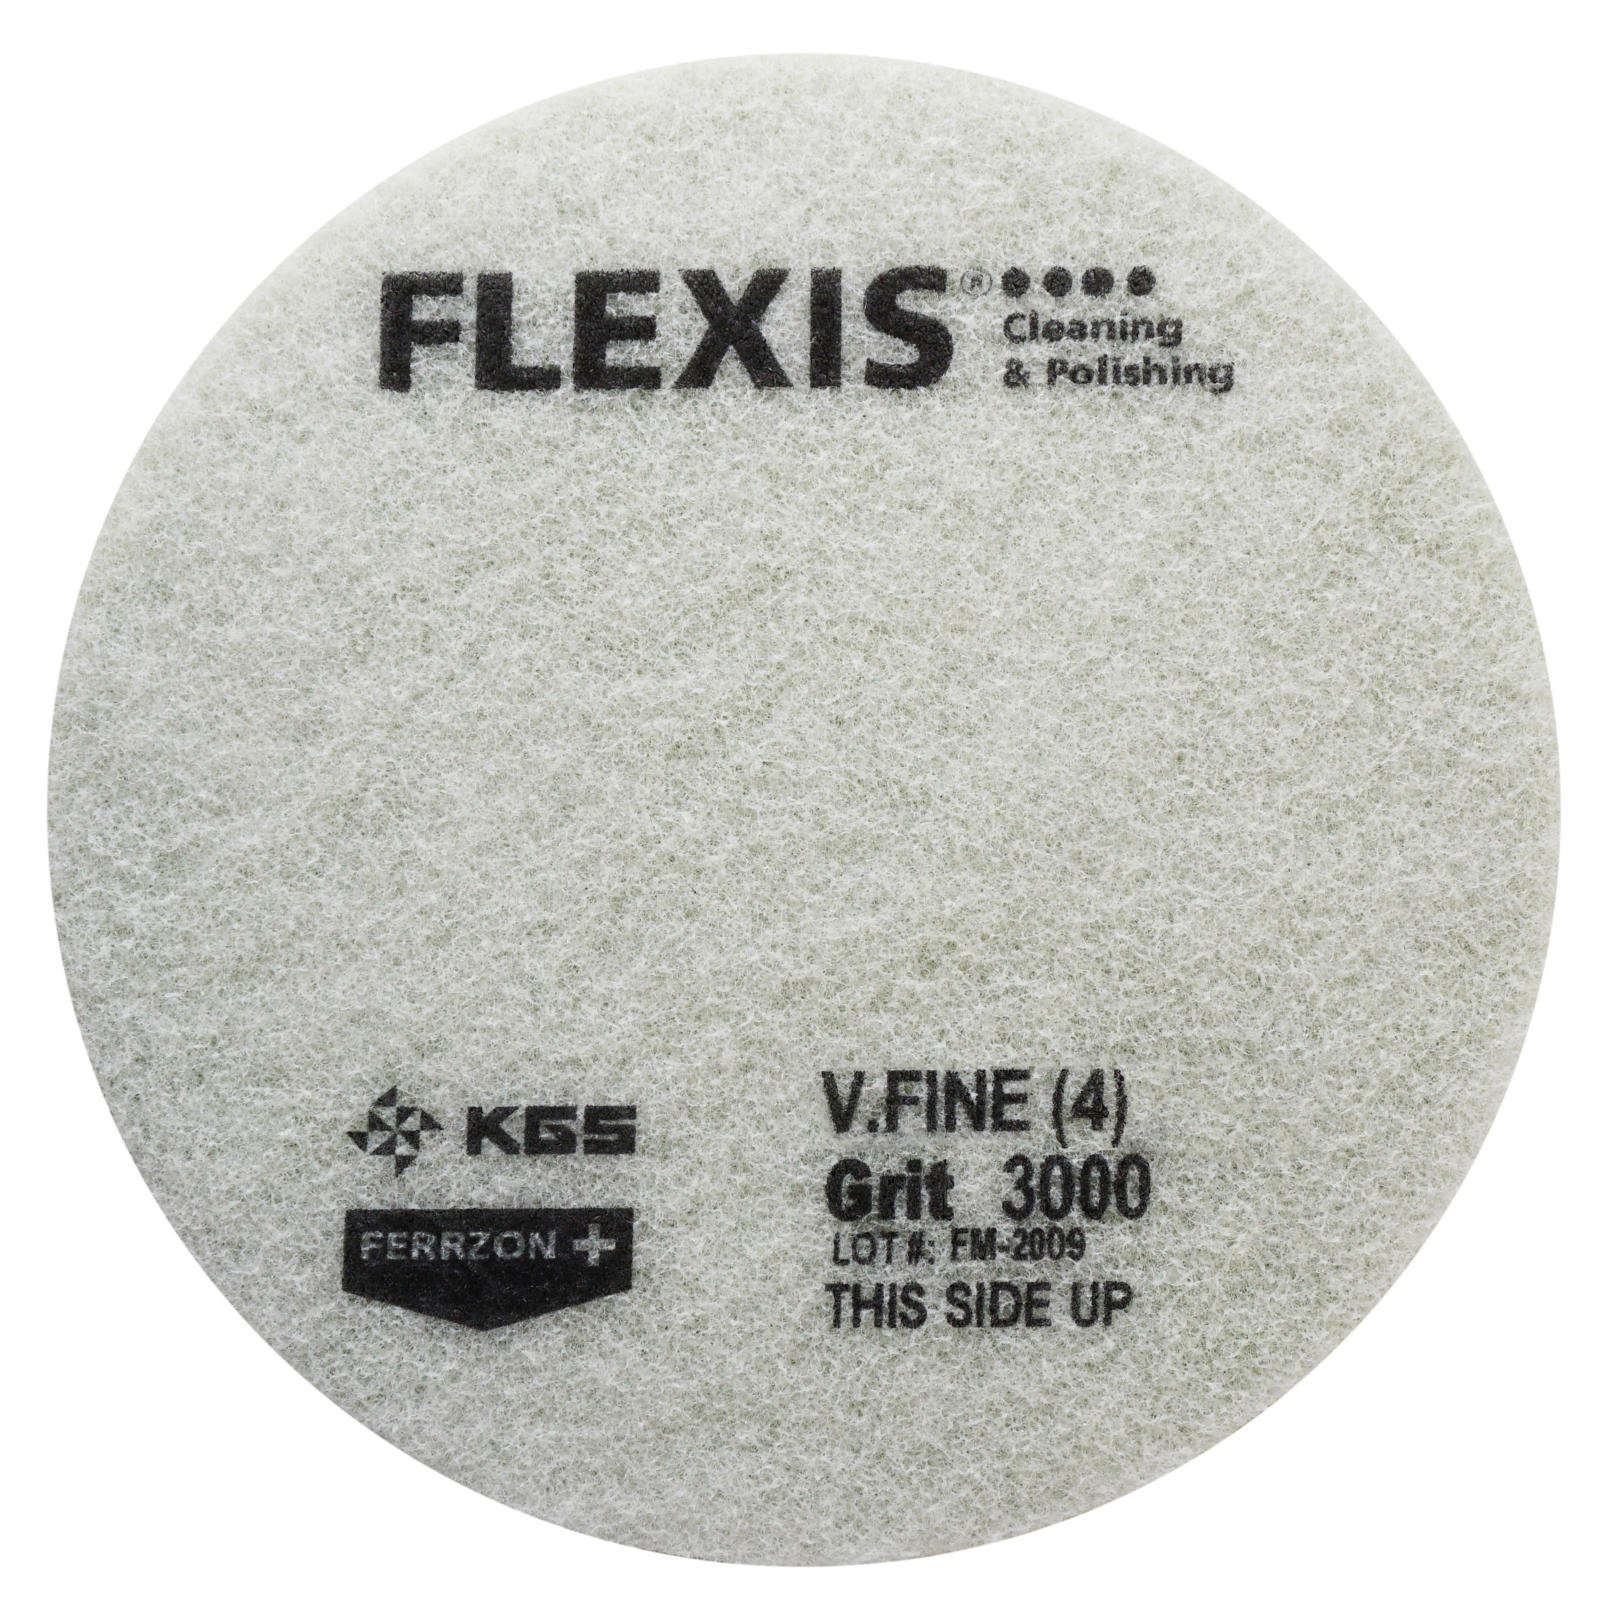 FLEXIS KGS Floor Cleaning & polishing Pads 17 inch, grit 3000 - Green (2 Pack) by KGS (Image #2)